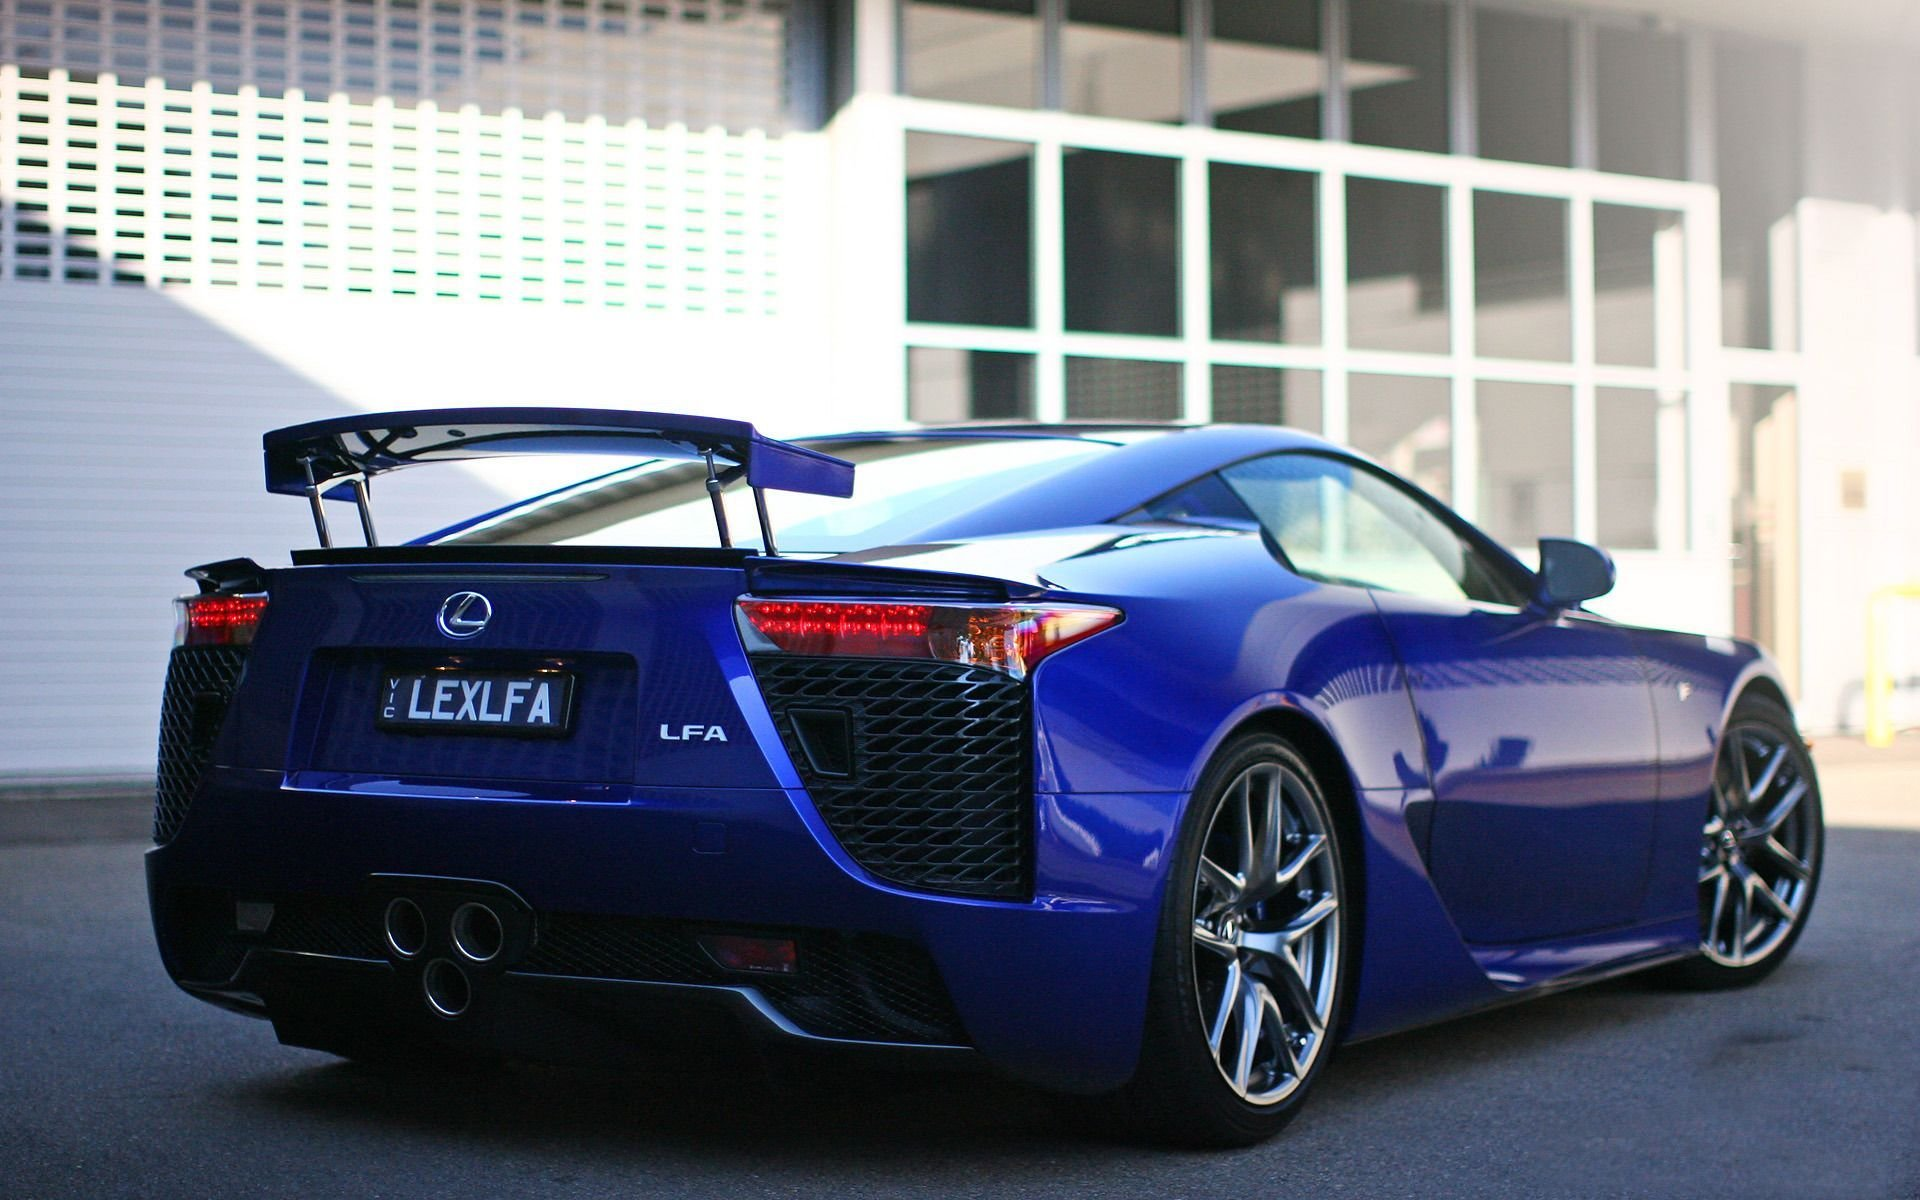 Latest Lexus Lfa Car Hd Wallpaper Blue Cars Wallpapers Pictures Free Download